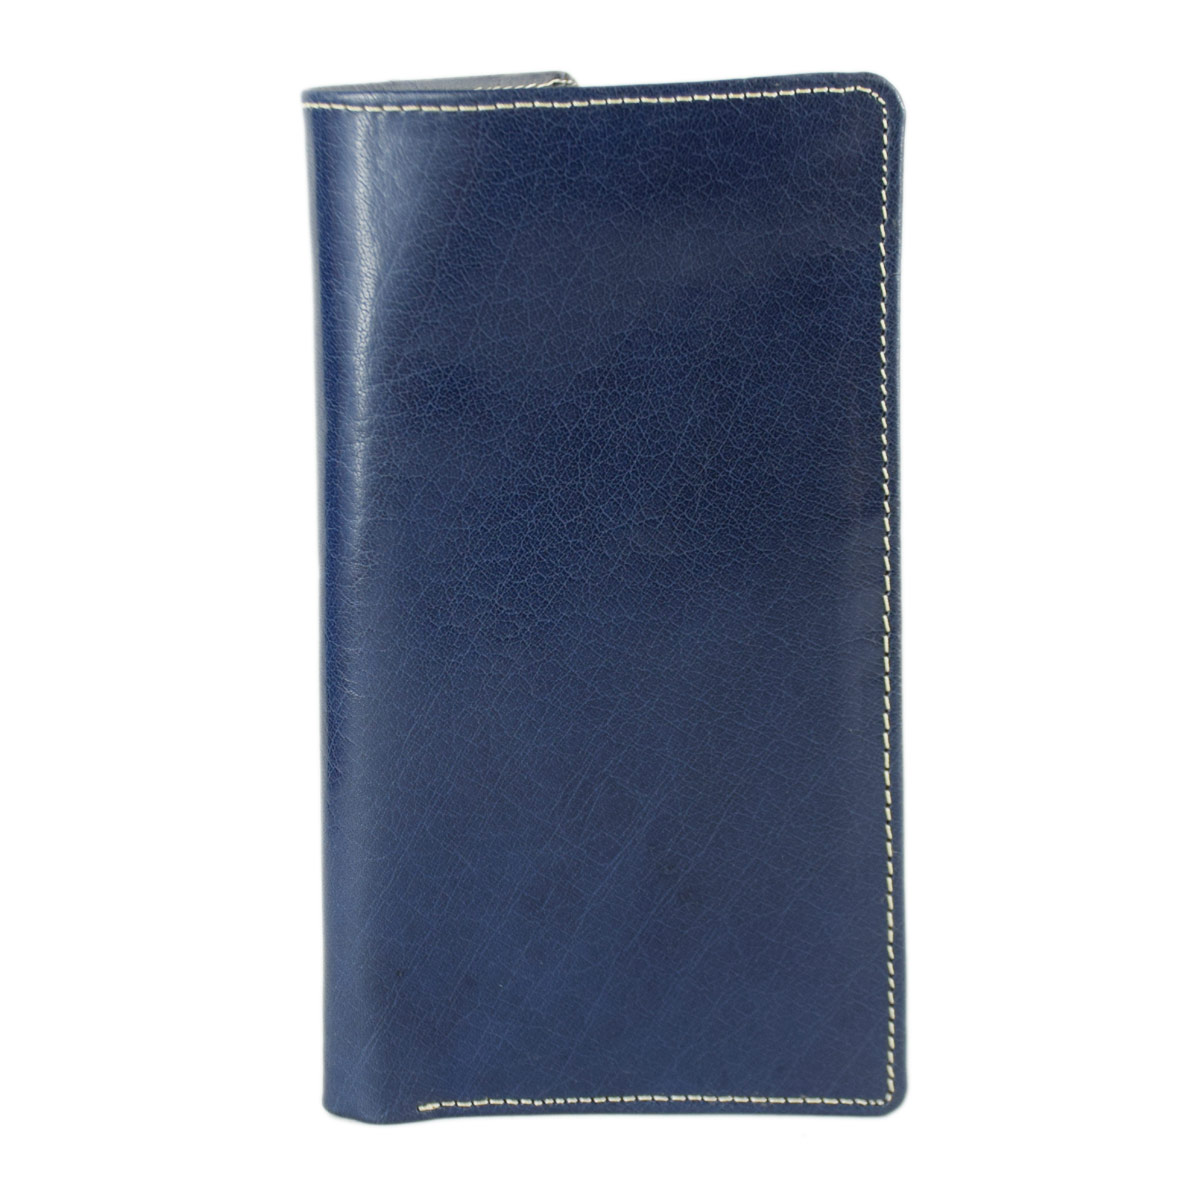 BLUE LONG WALLET WITH SEVERAL POCKETS